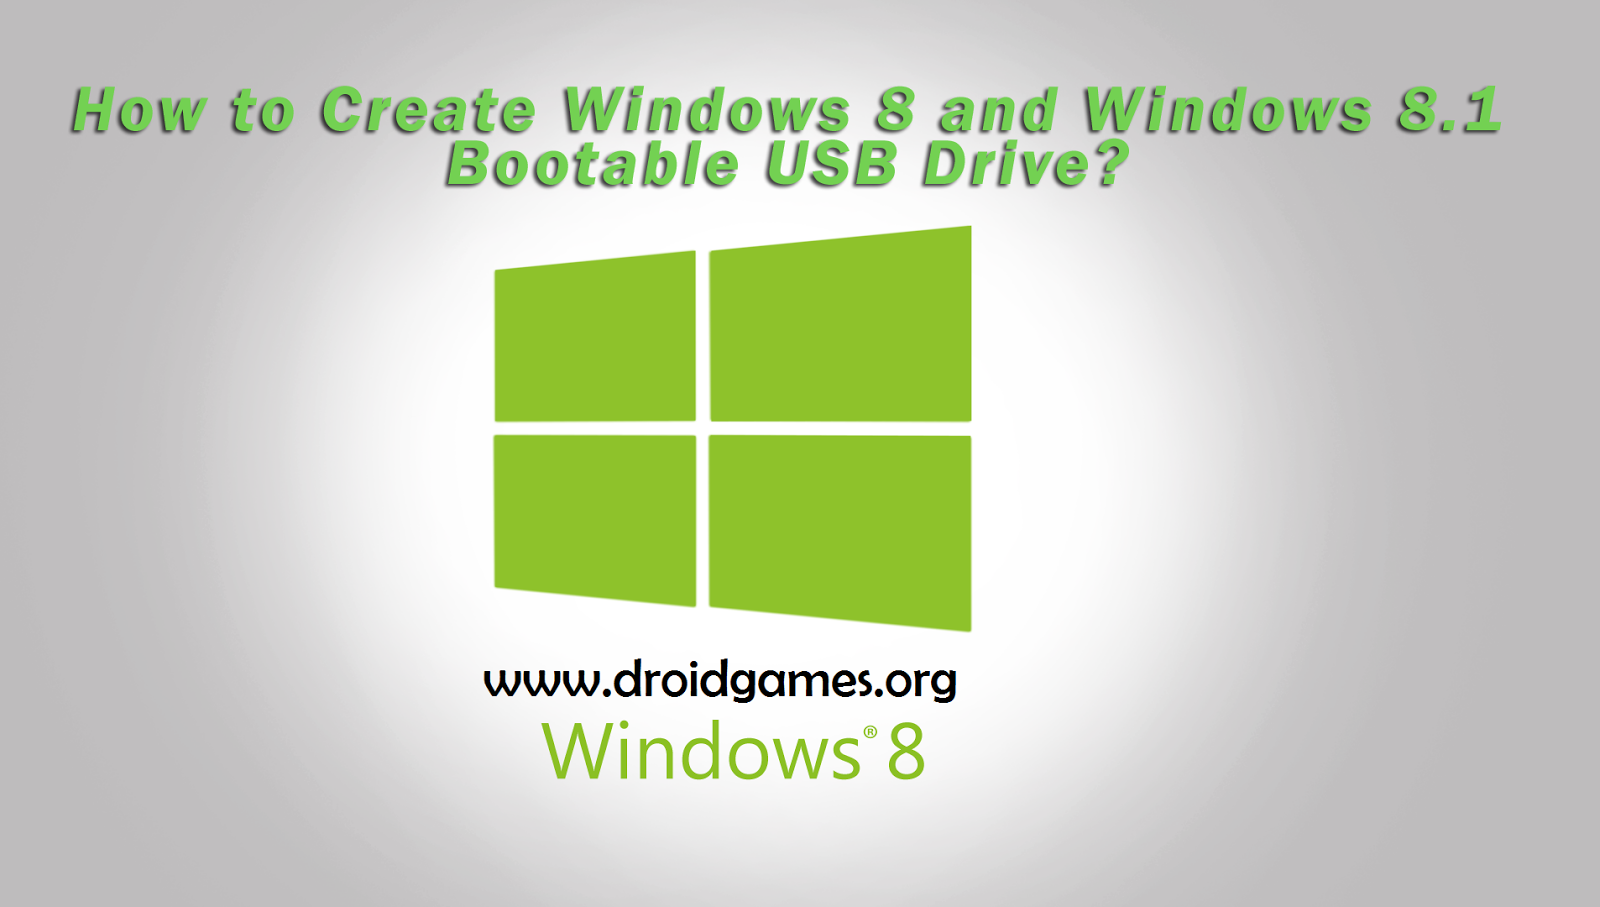 install-windows-8-8.1-for-bootable-pendrive